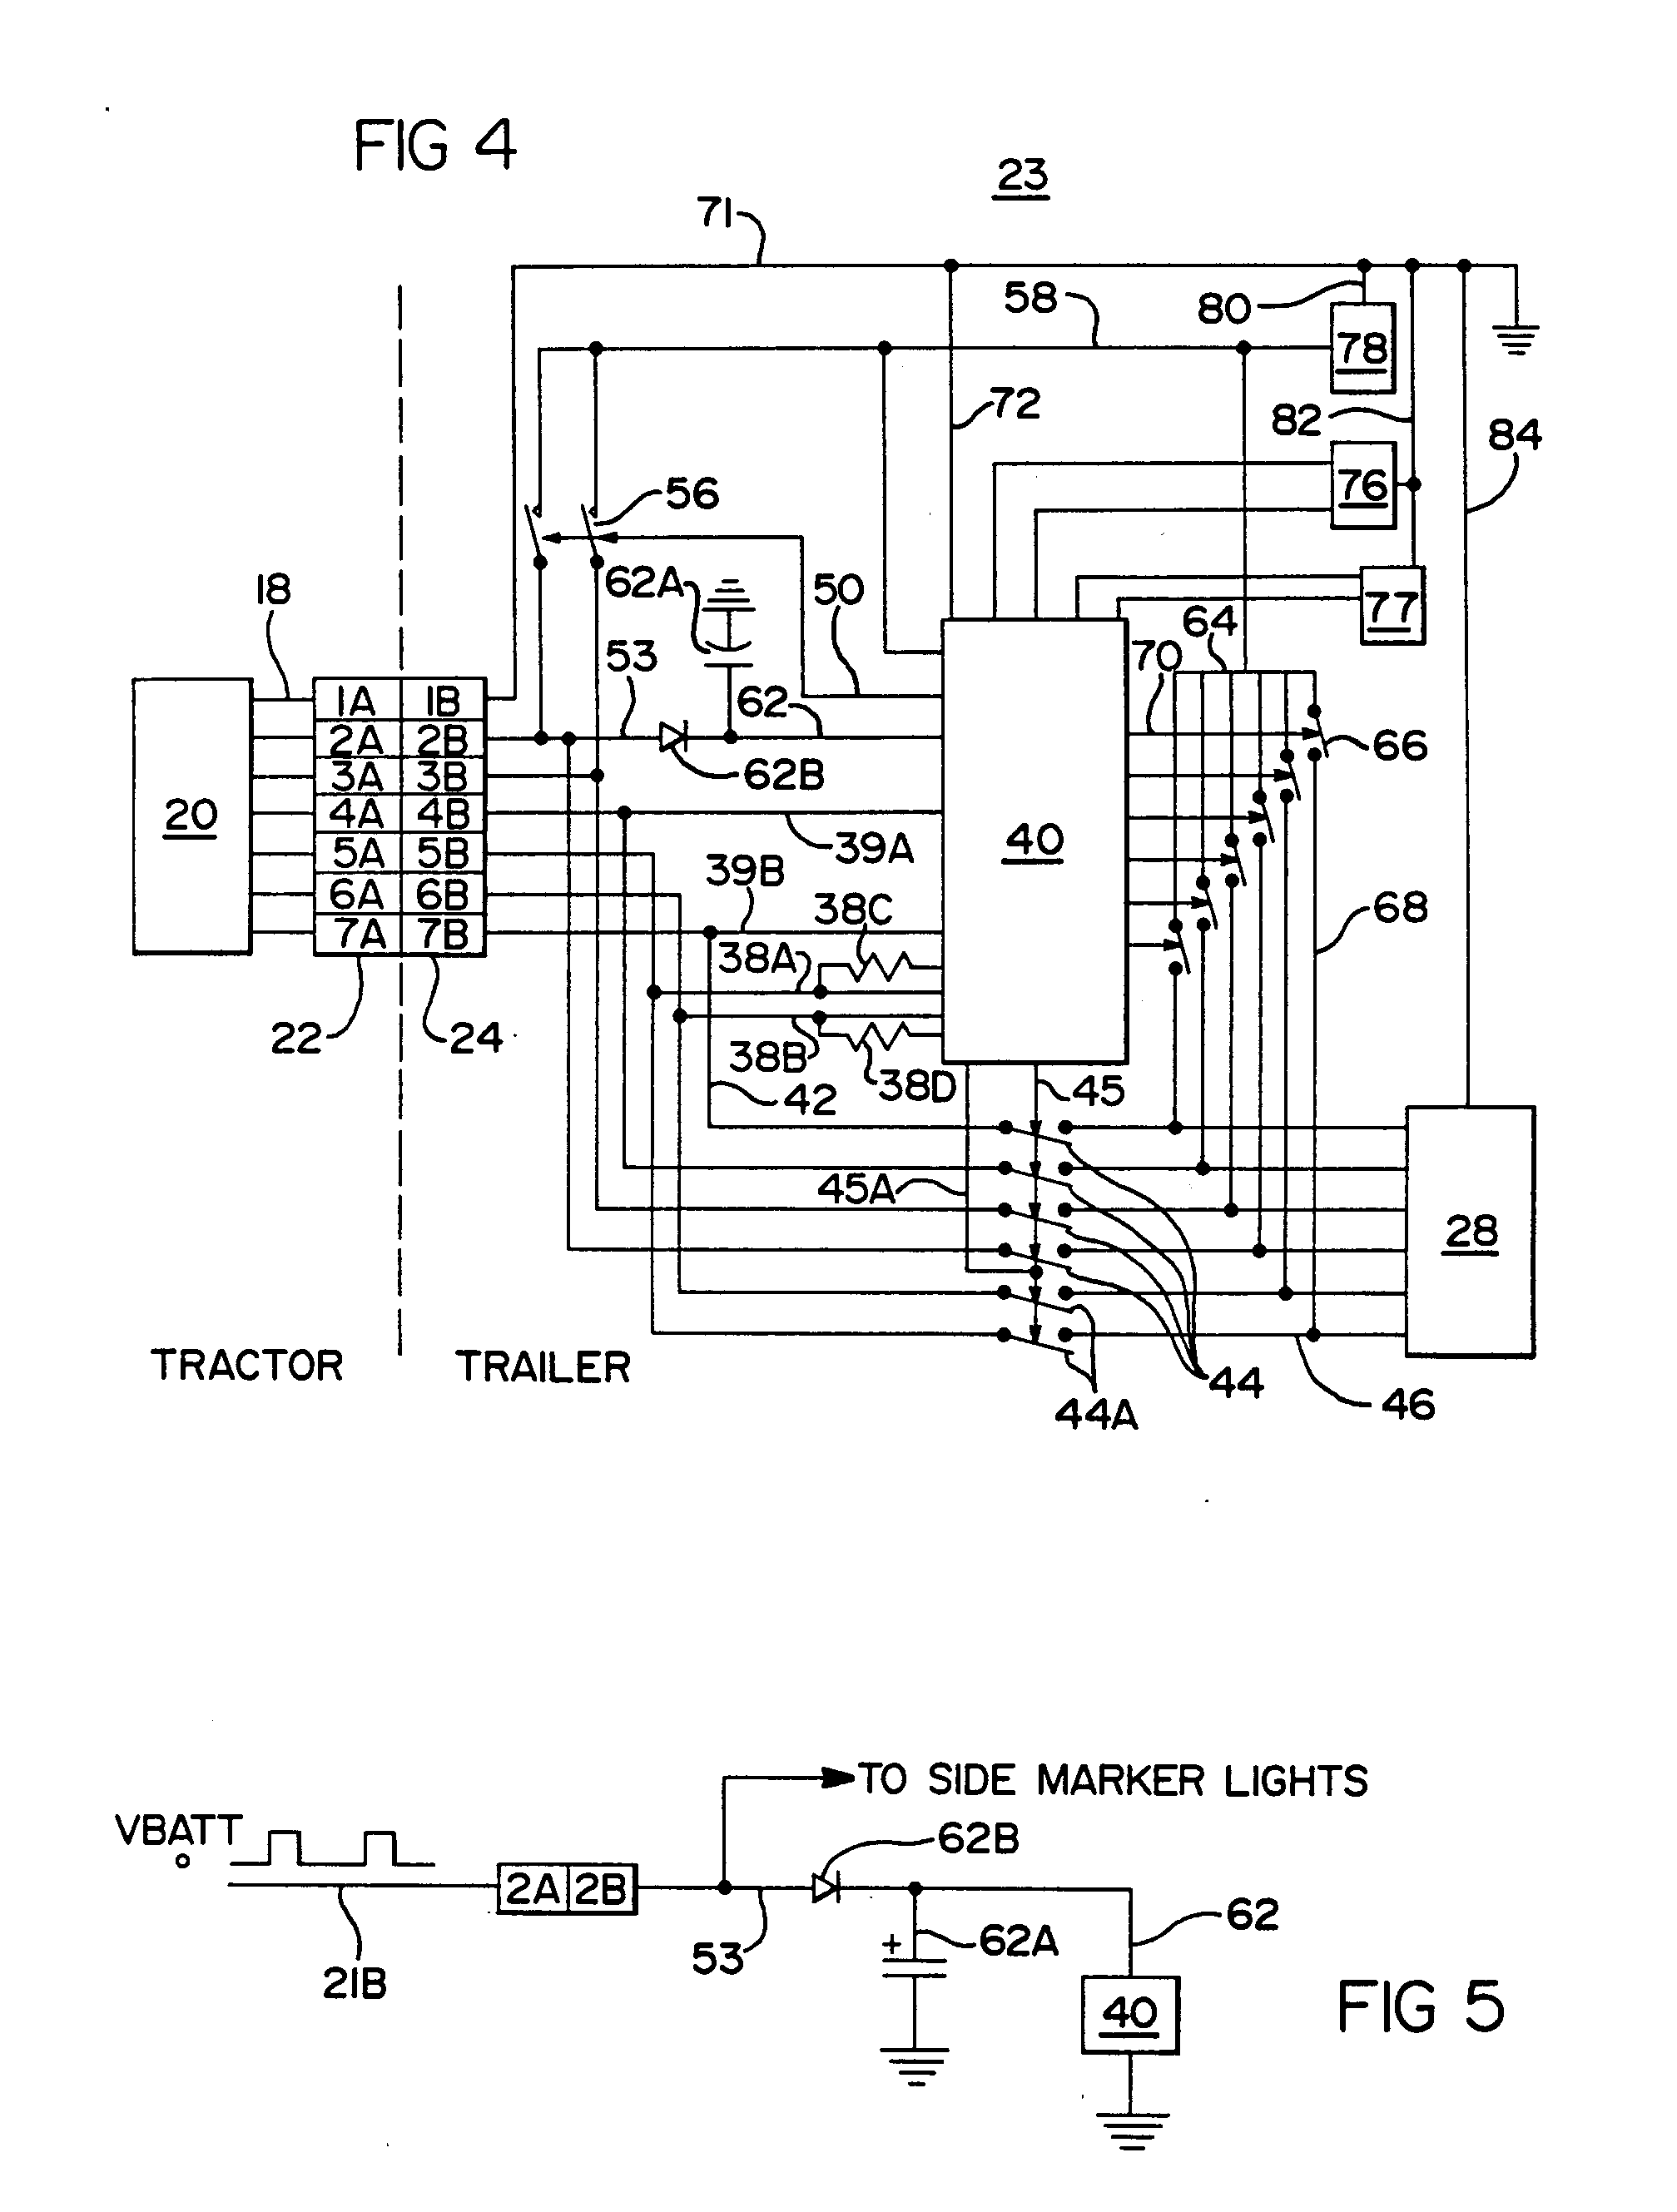 [DIAGRAM] Patent Us5397924 Truck Tractor And Trailer